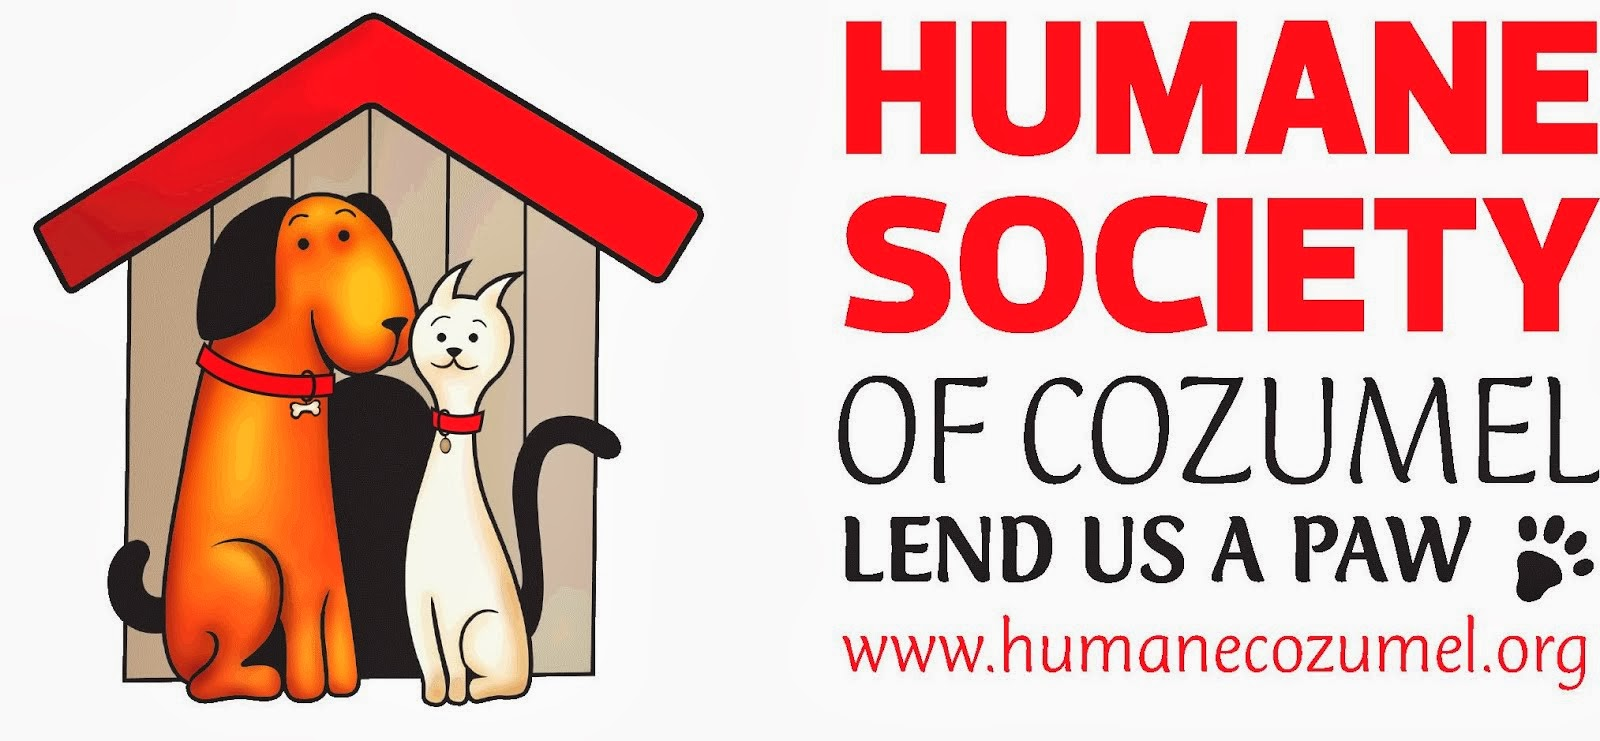 The Humane Society of Cozumel Island